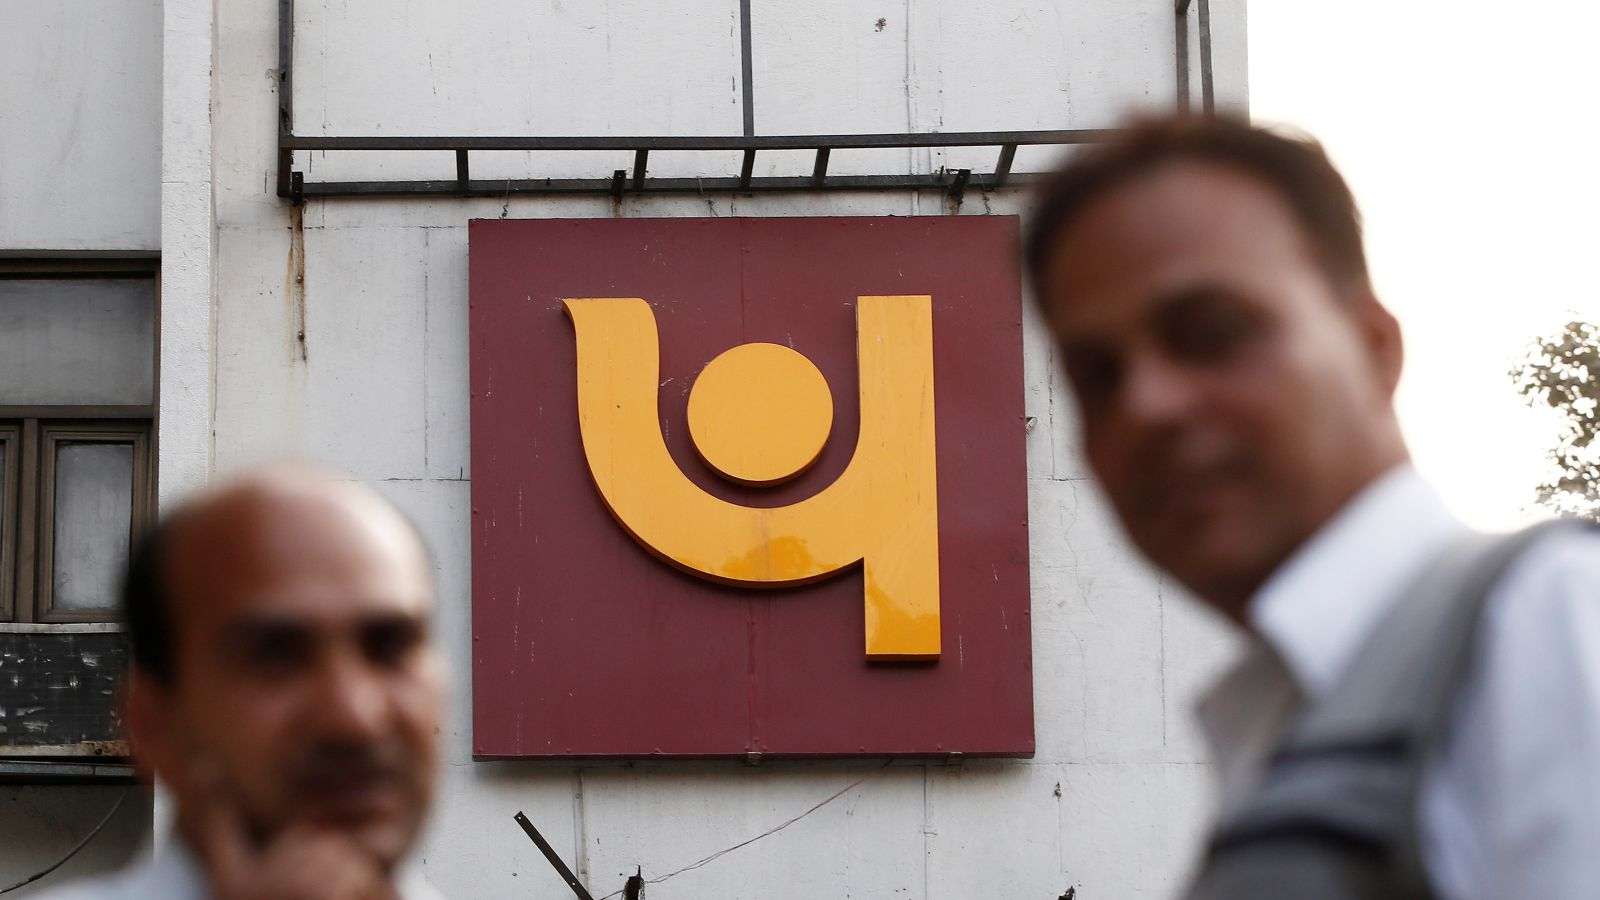 People stand in front of the logo of Punjab National Bank outside a branch of the bank in New Delhi, India February 15, 2018